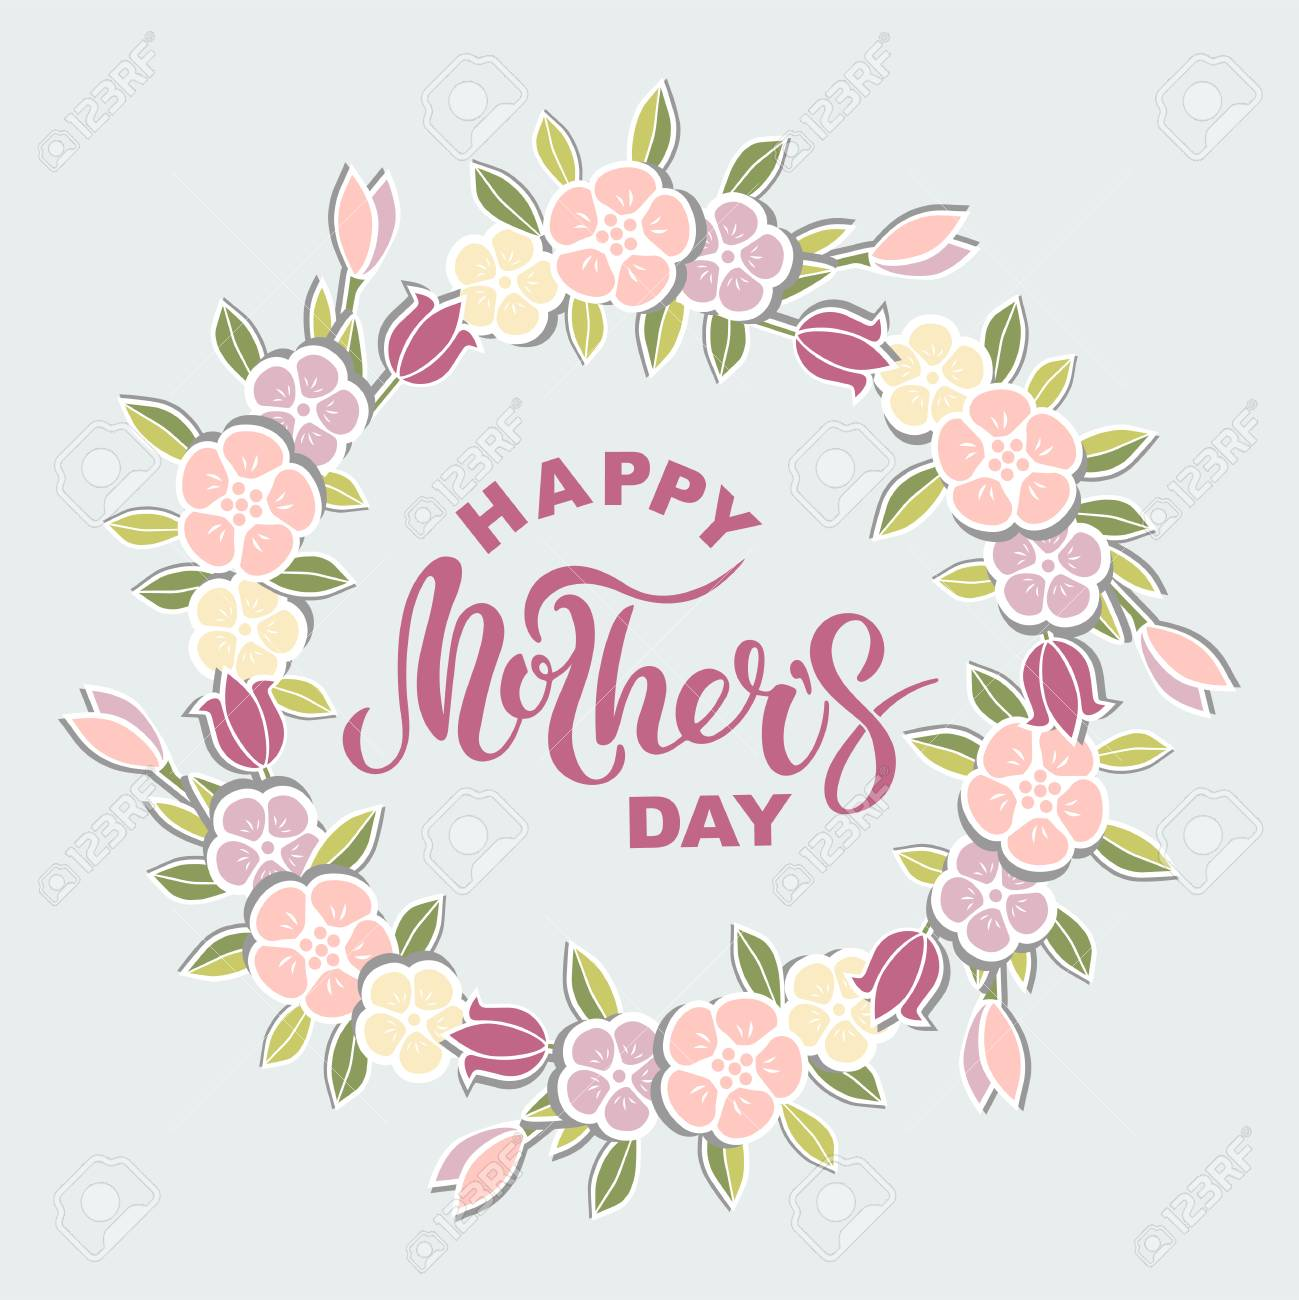 Mothers Day Greeting Card Template With Floral Designs Royalty